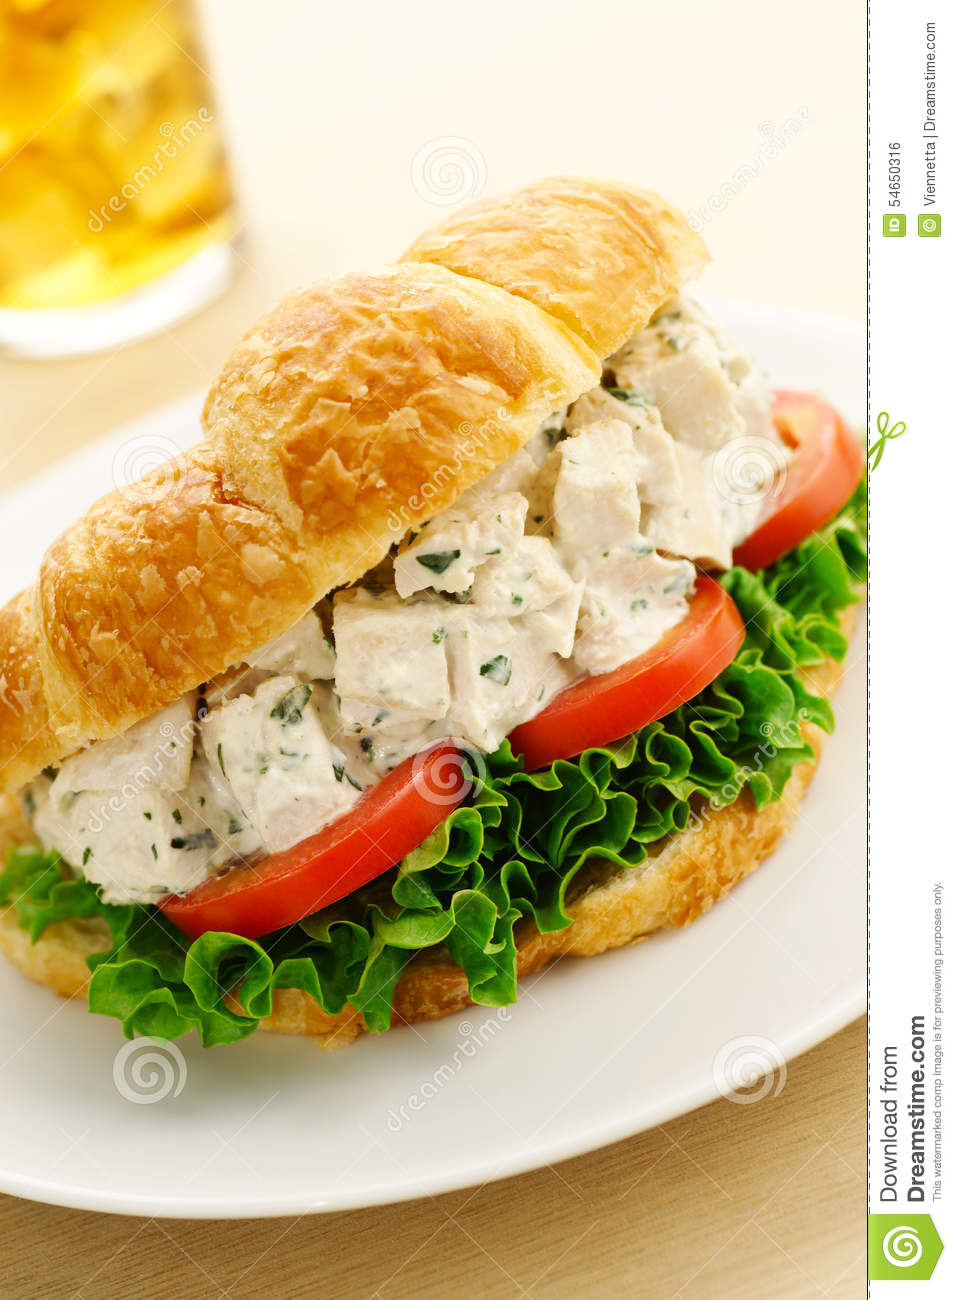 Chicken Salad Croissant Sandwich Stock Photo Image Of Meat Food